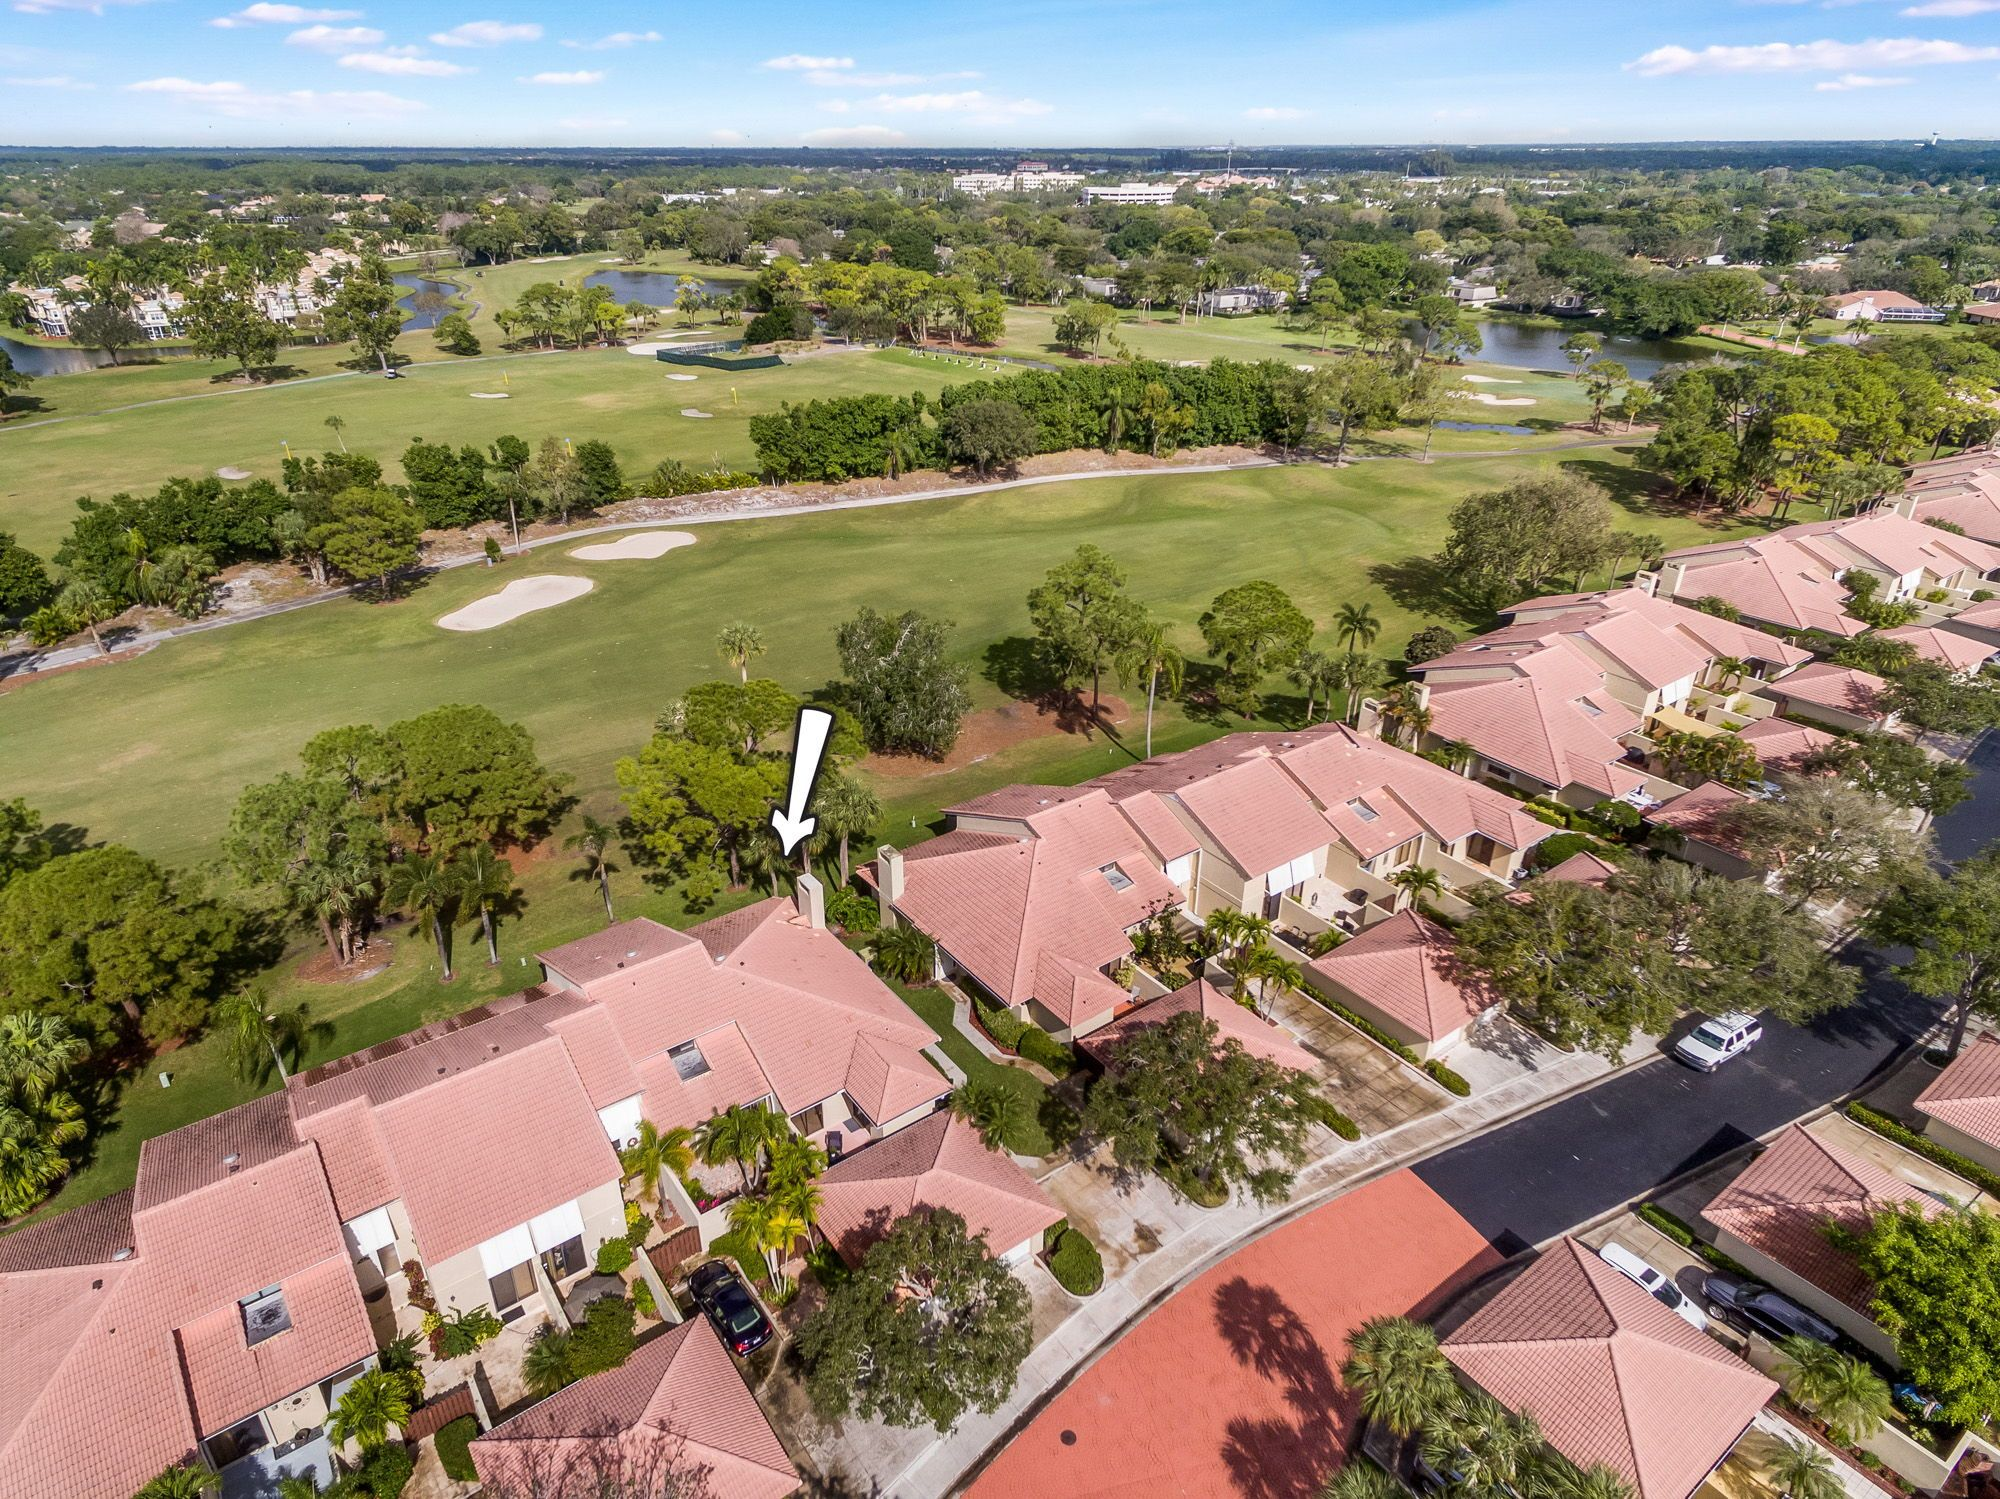 4d5abc2947e0c26493232a52b2915088 - The Meadows Florida Palm Beach Gardens